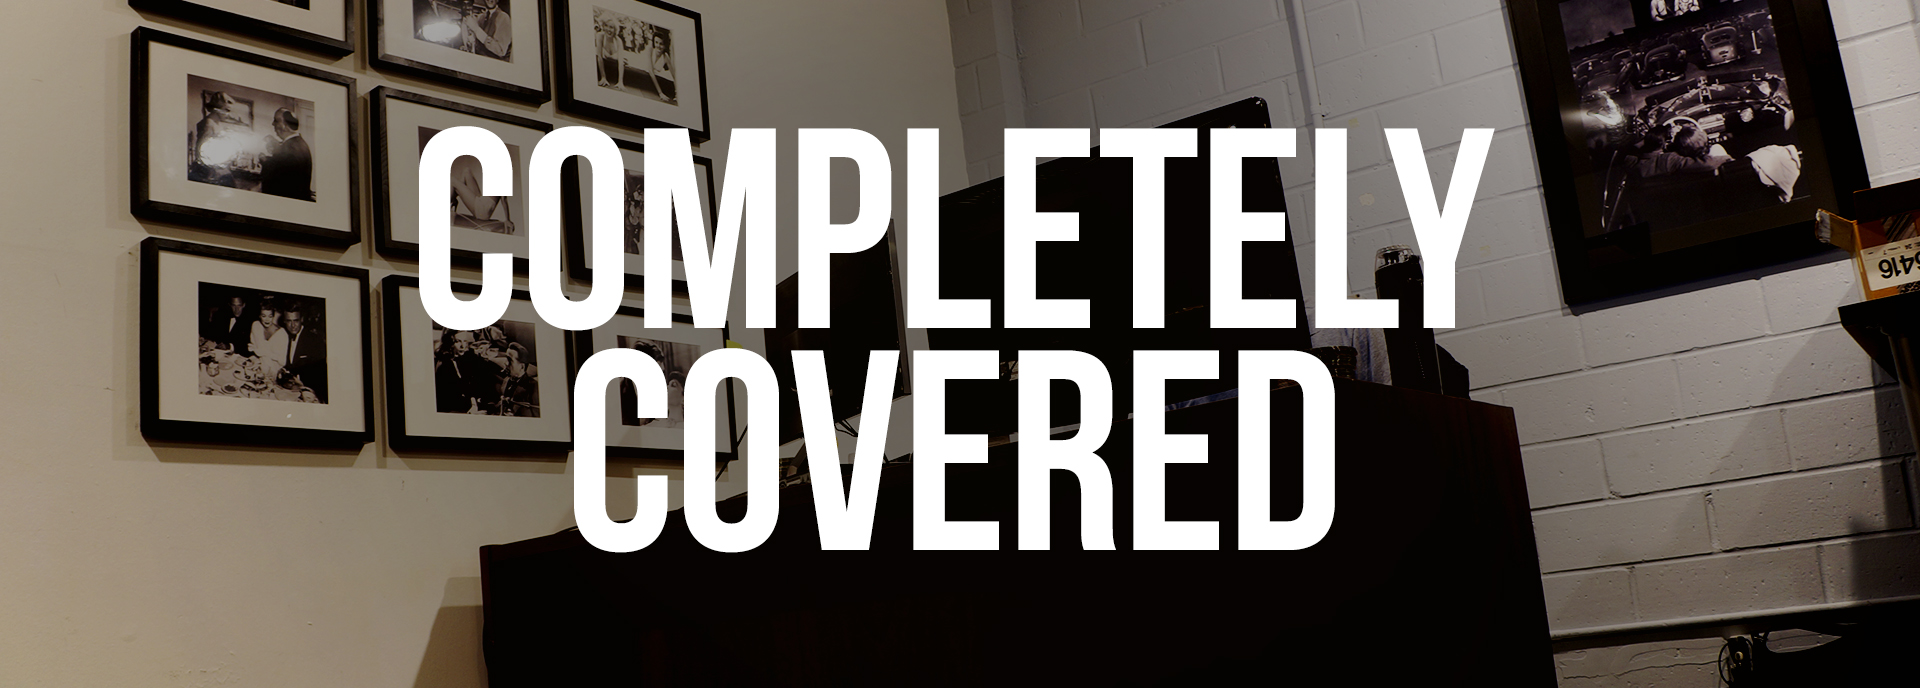 COMPLETELY_COVERED_03